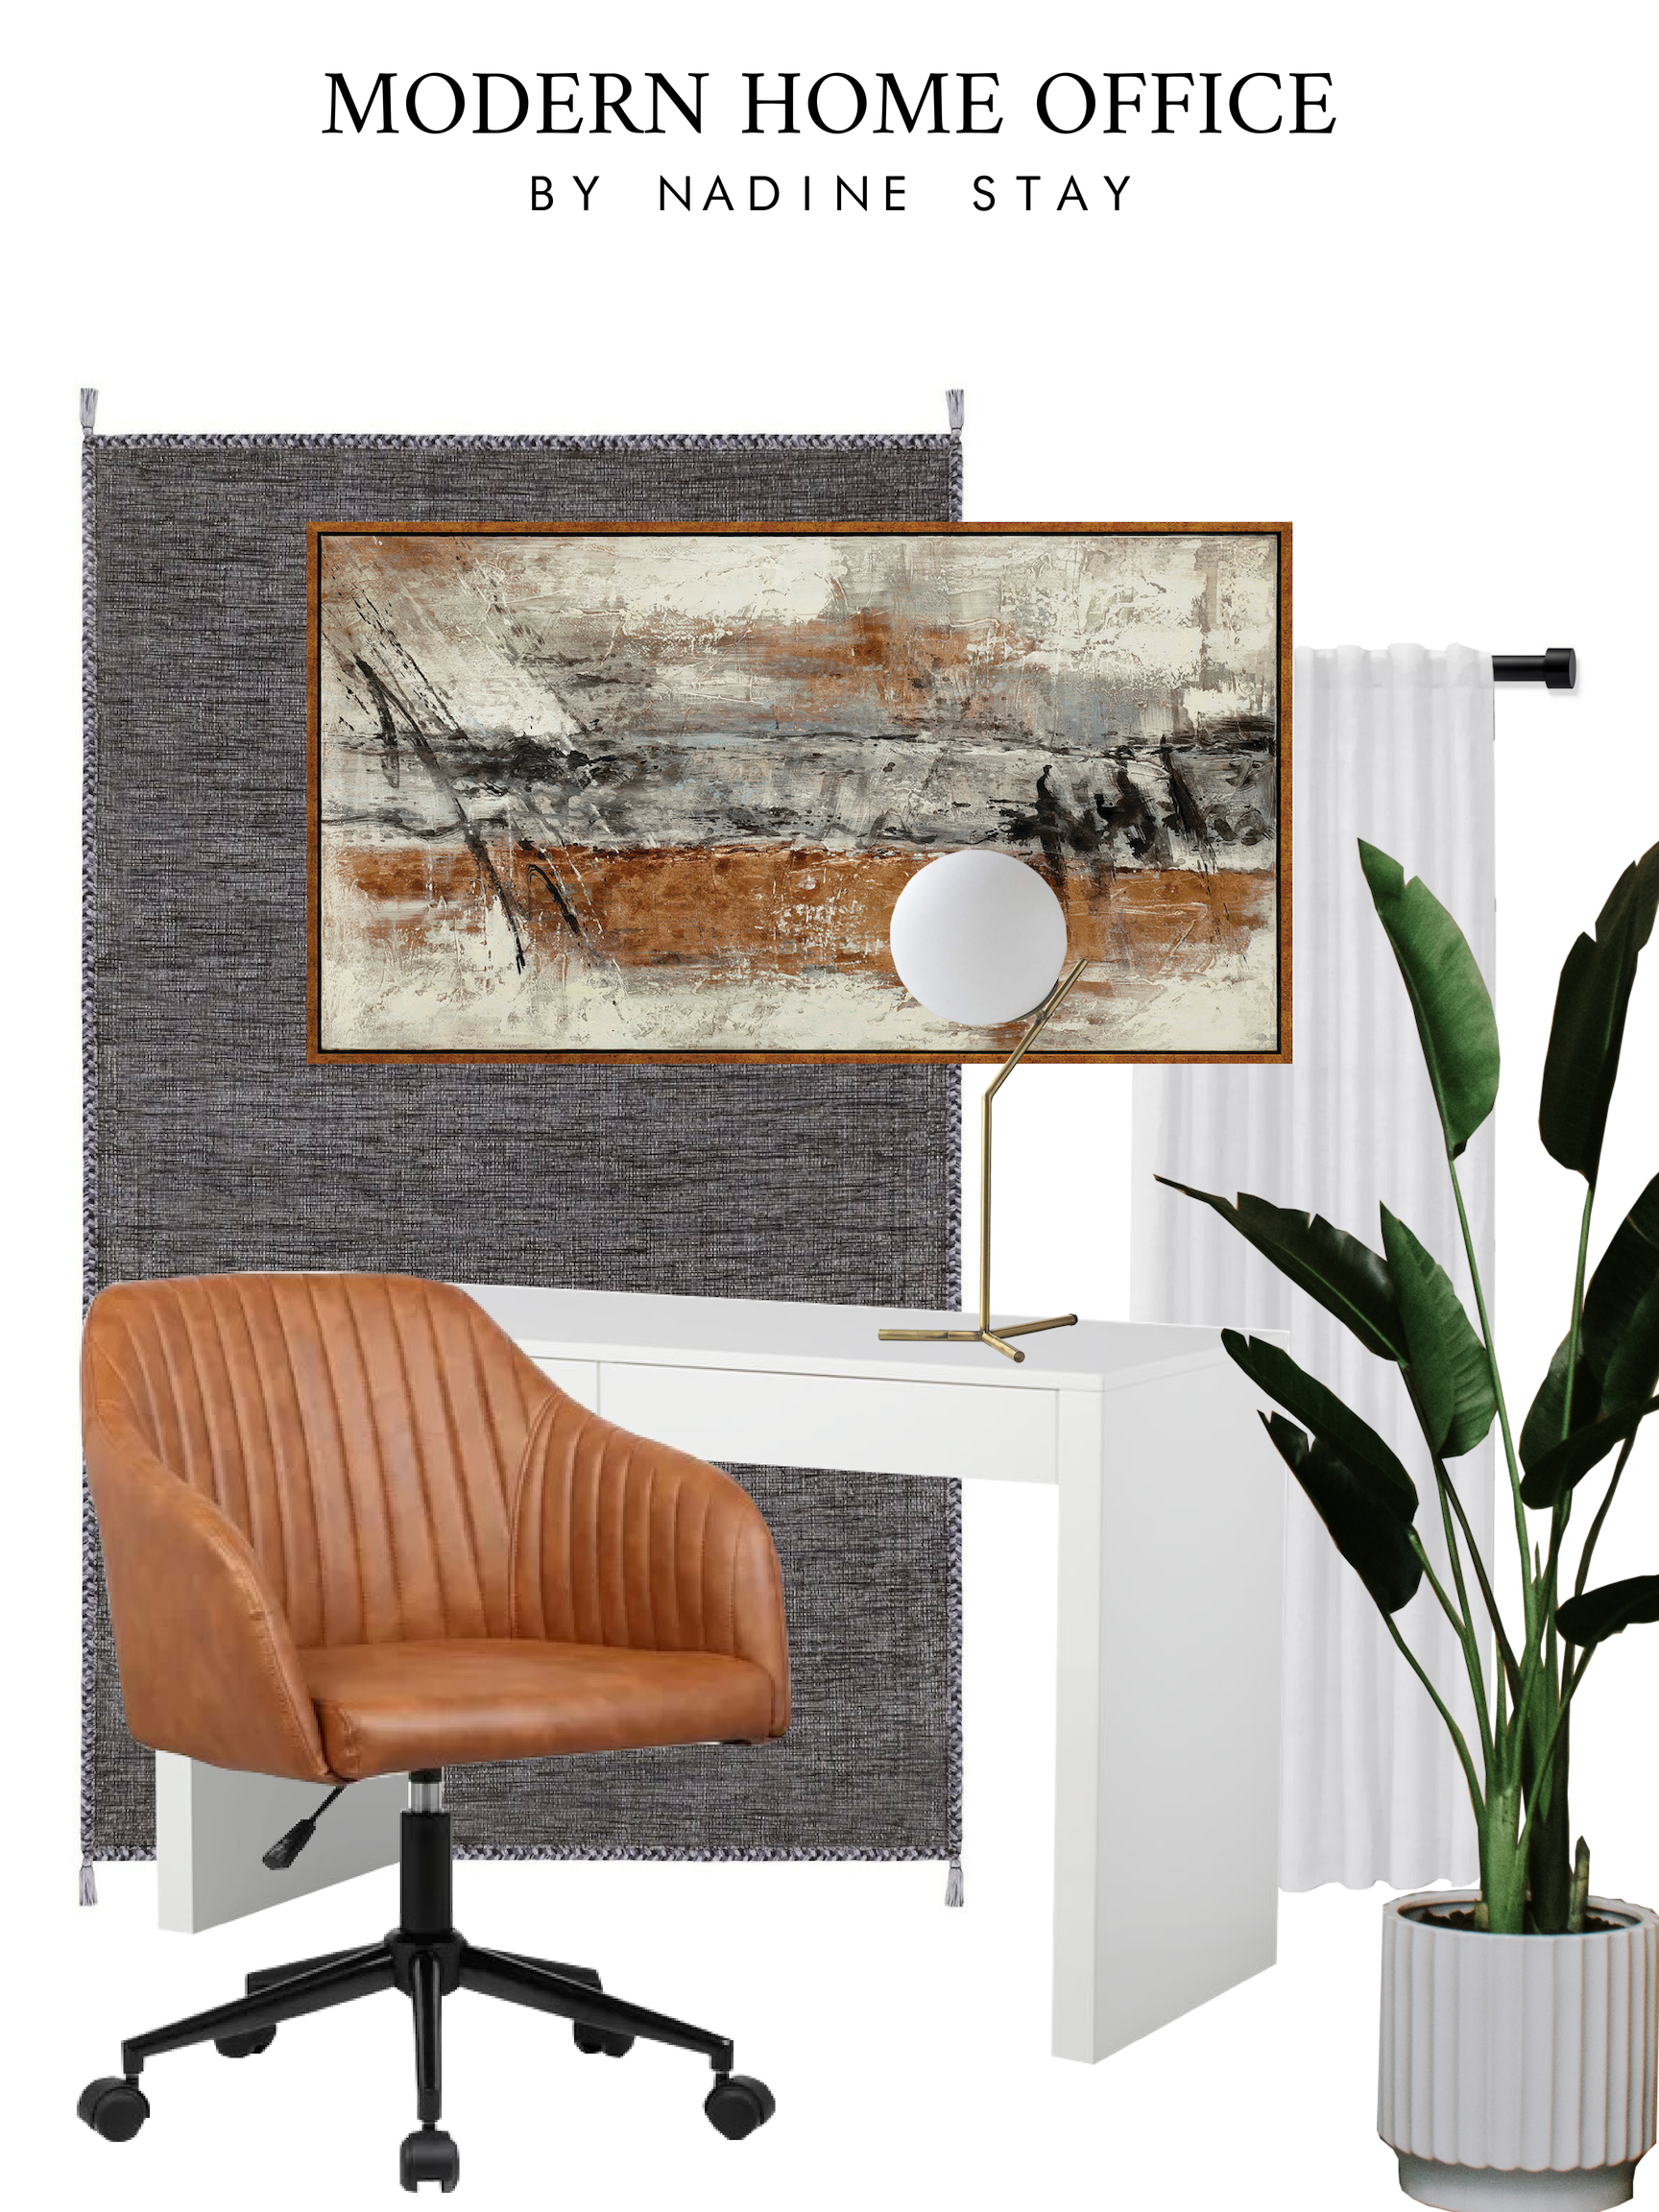 Home office inspiration & game plan - Converting our guest bedroom into an office. Waterfall desk, leather office chairs, black rug, and a walnut mid century dresser. Styling an office by Nadine Stay